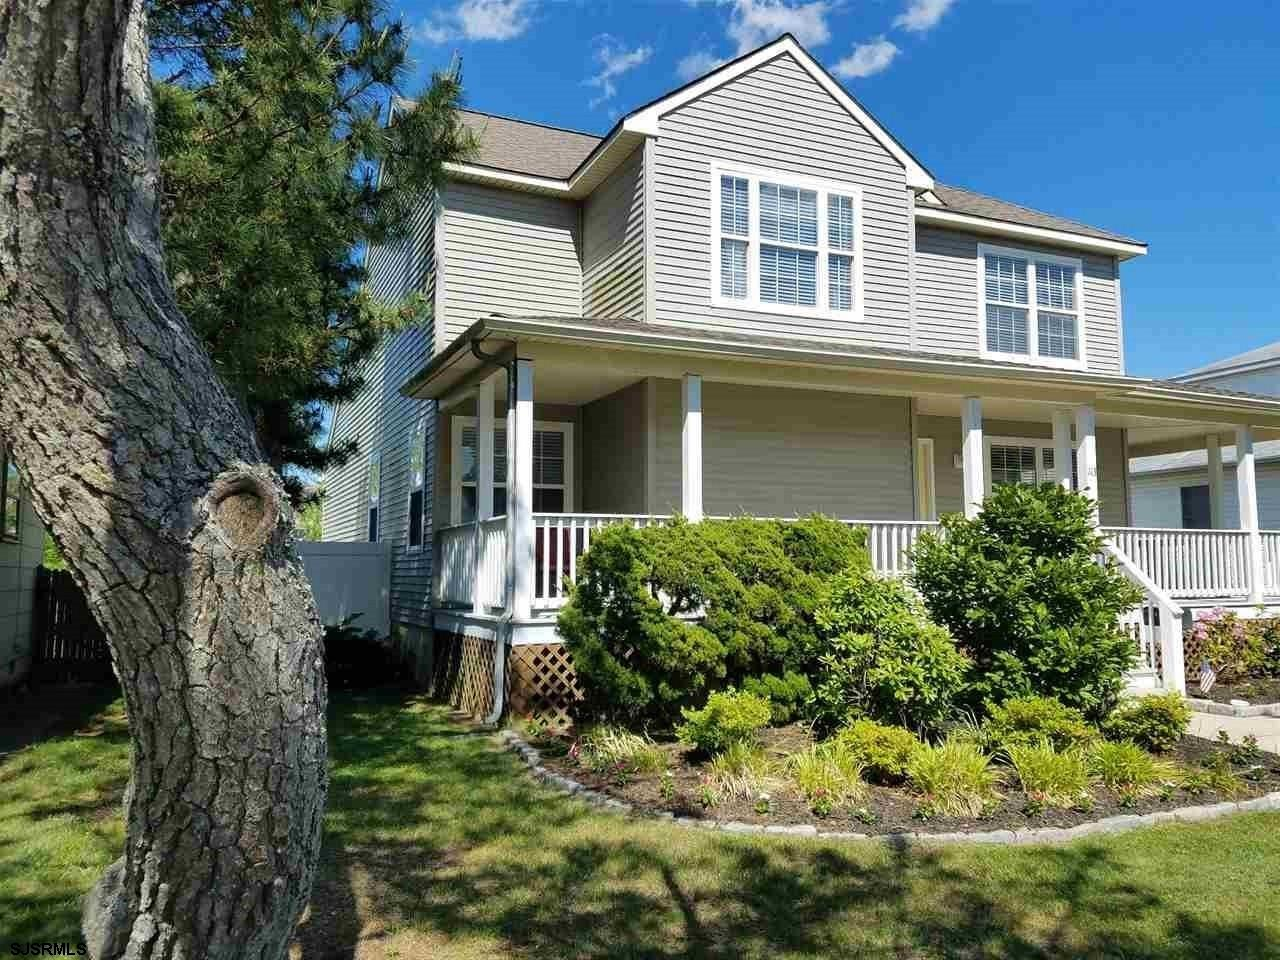 2 Story Contemporary Home In Brigantine's sought after A-Zone neighborhood! Only 2 short blocks to t